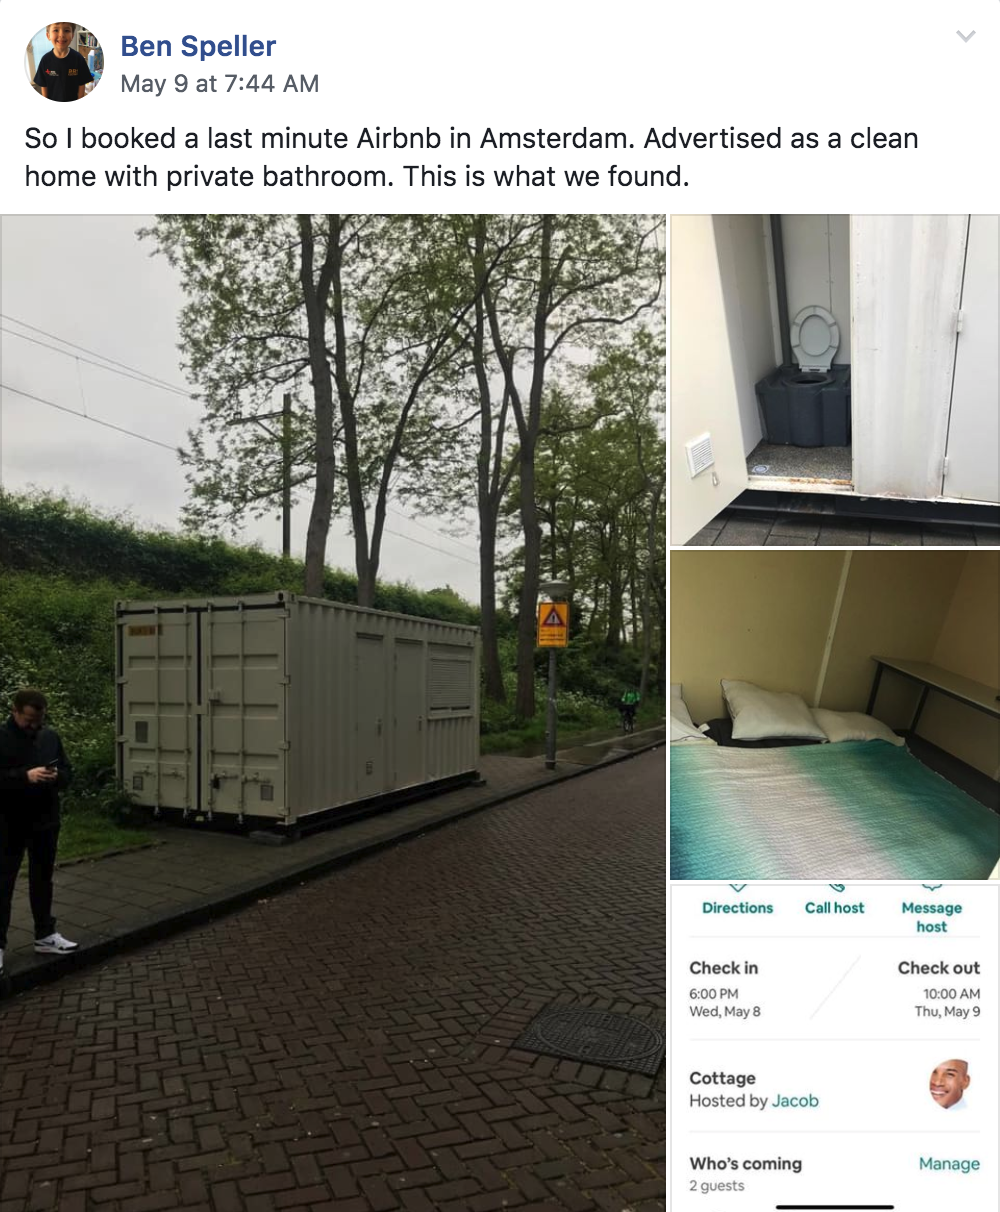 Clean Home' With 'Private Bathroom' on Airbnb Just a